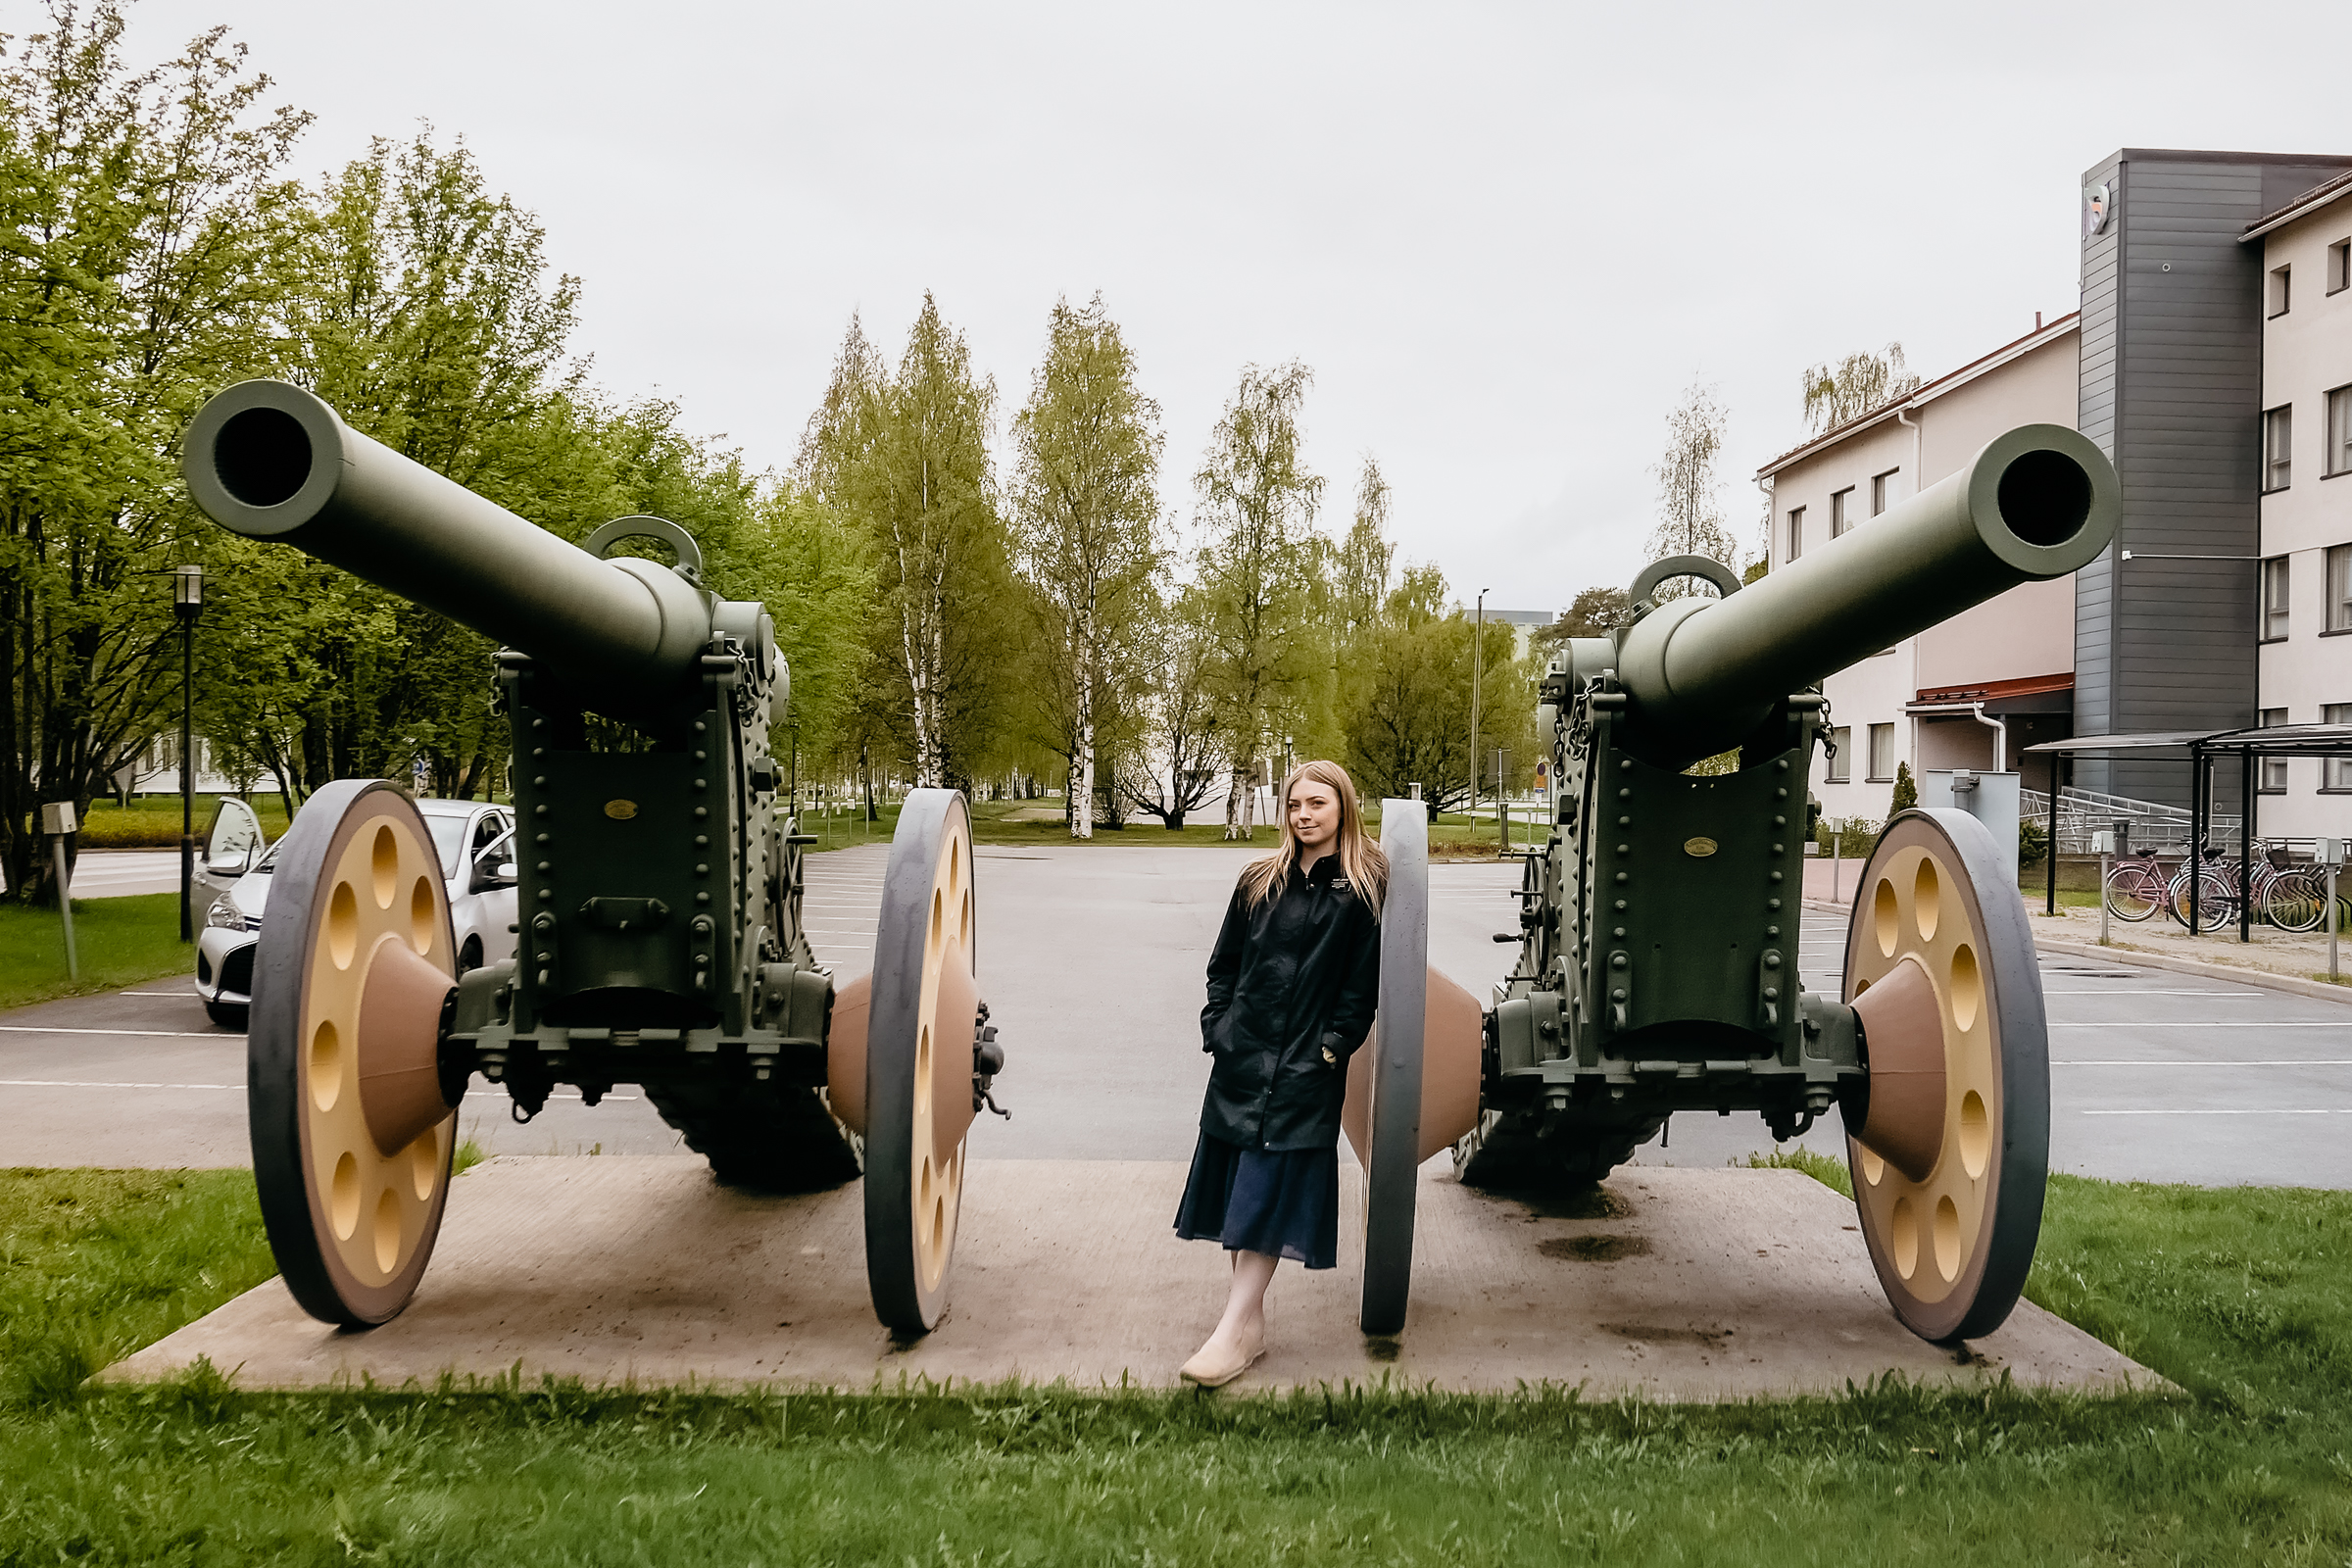 found some cool canons